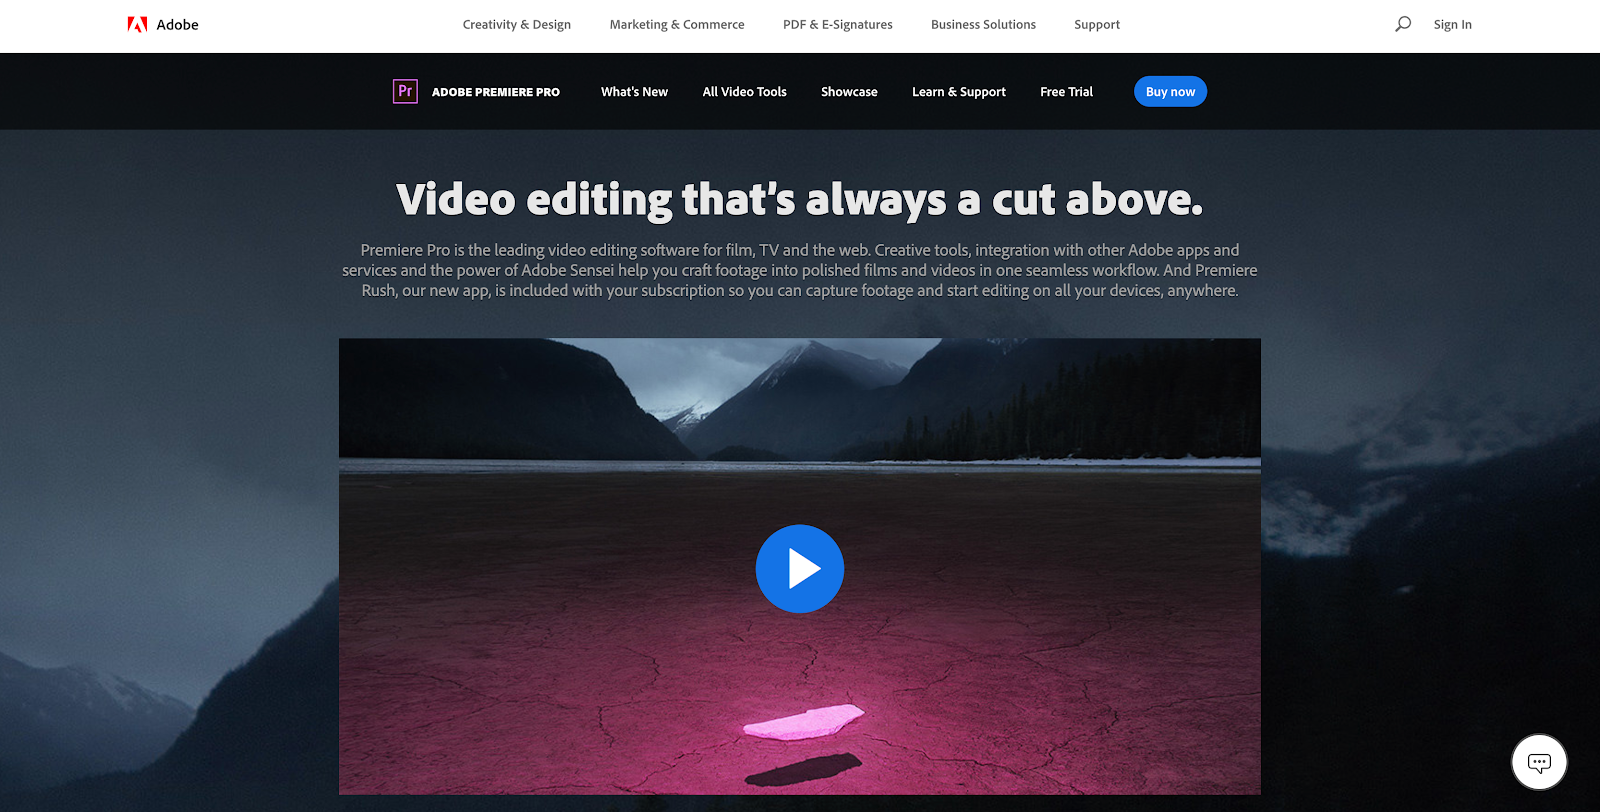 Adobe Premiere Pro is one of the best video editing programs in the business